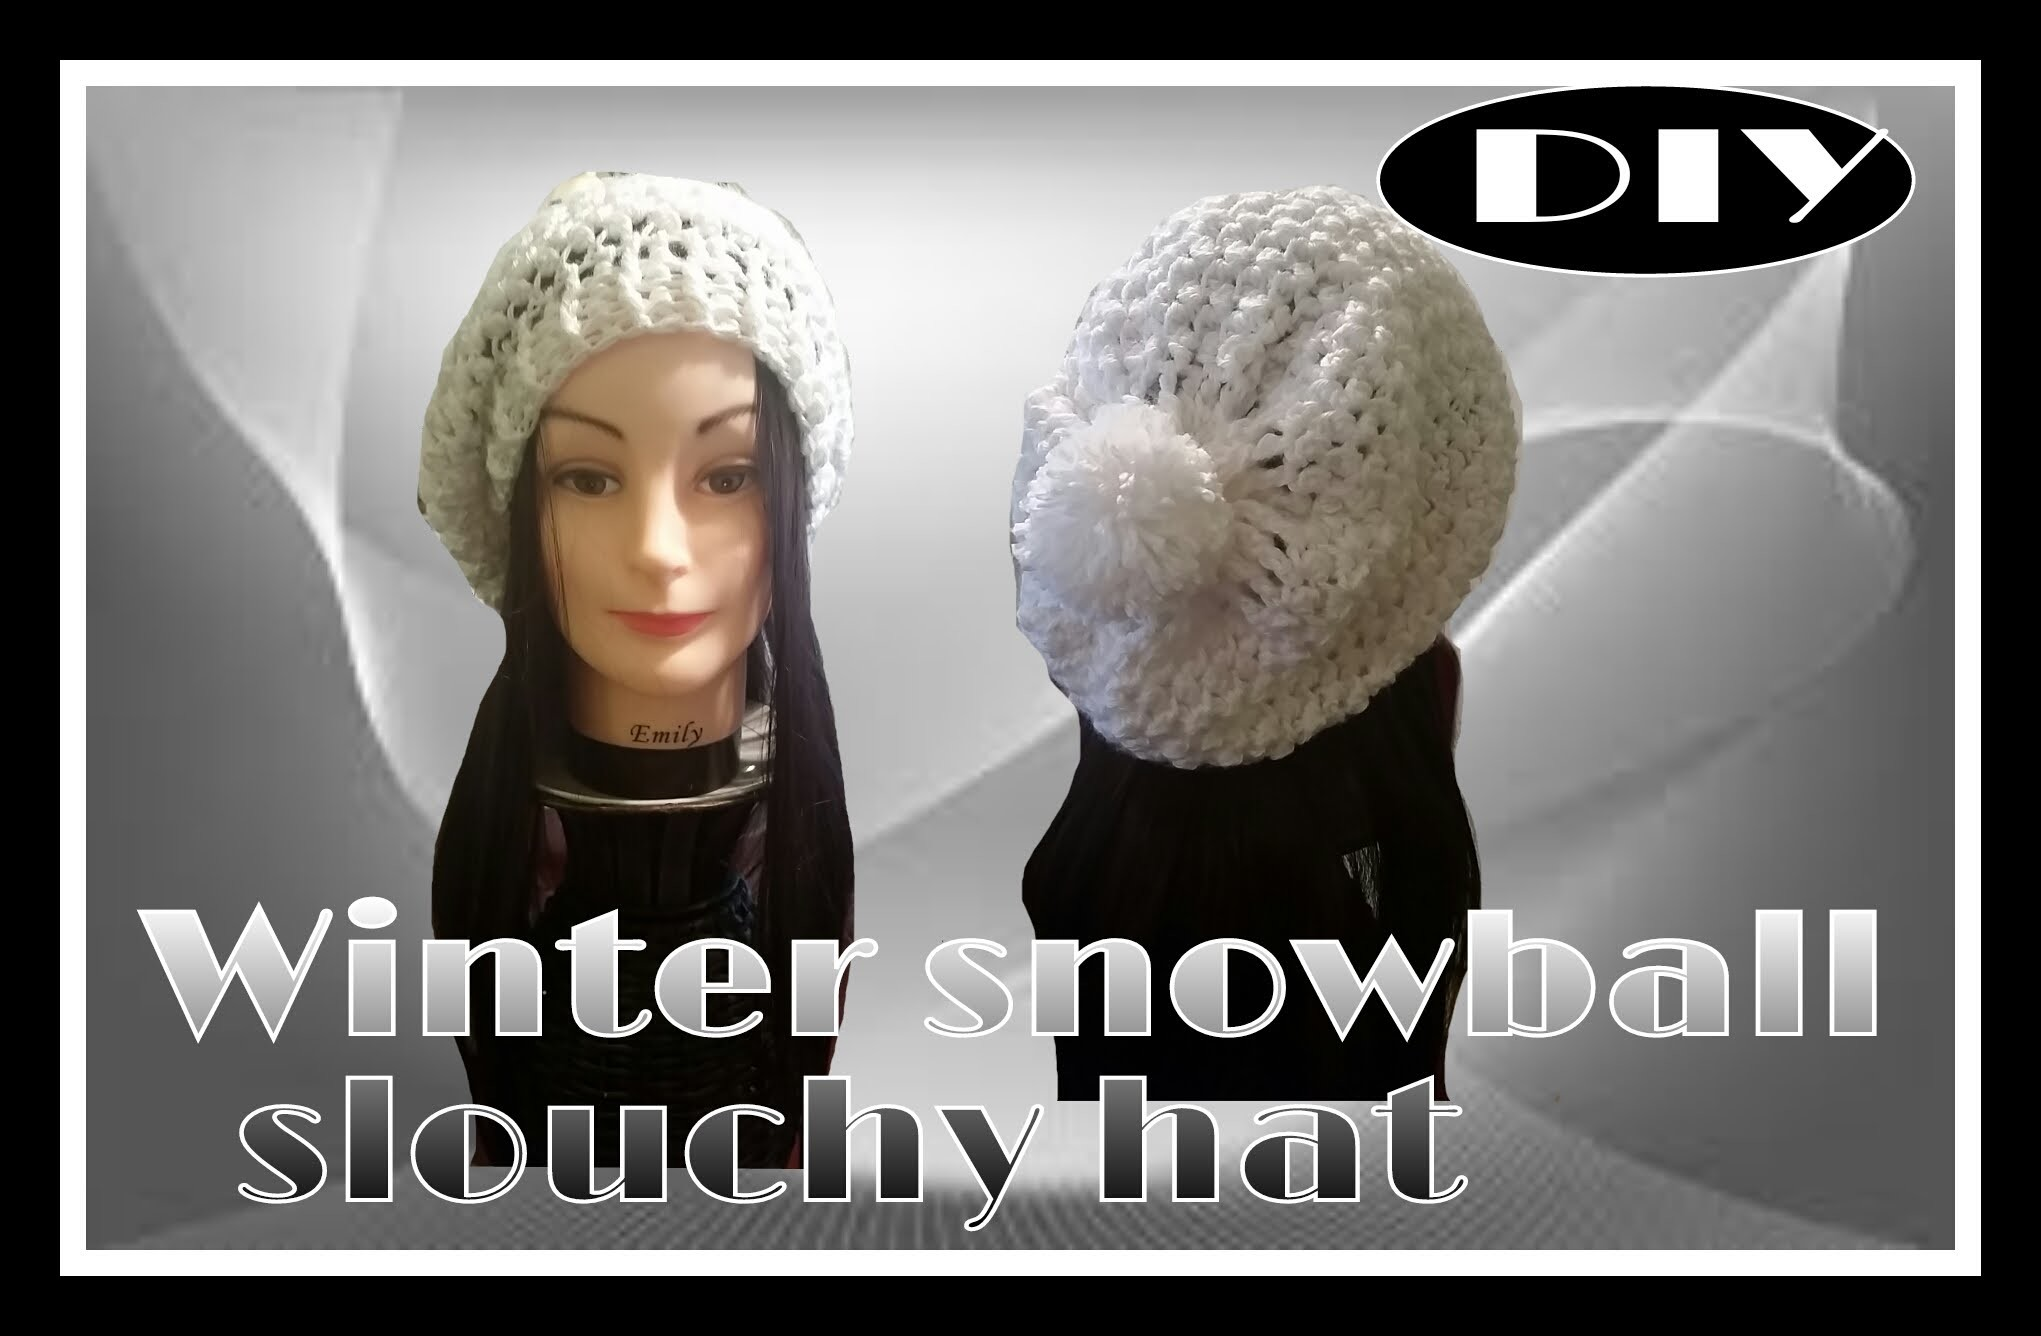 Winter snowball slouchy hatpart 2